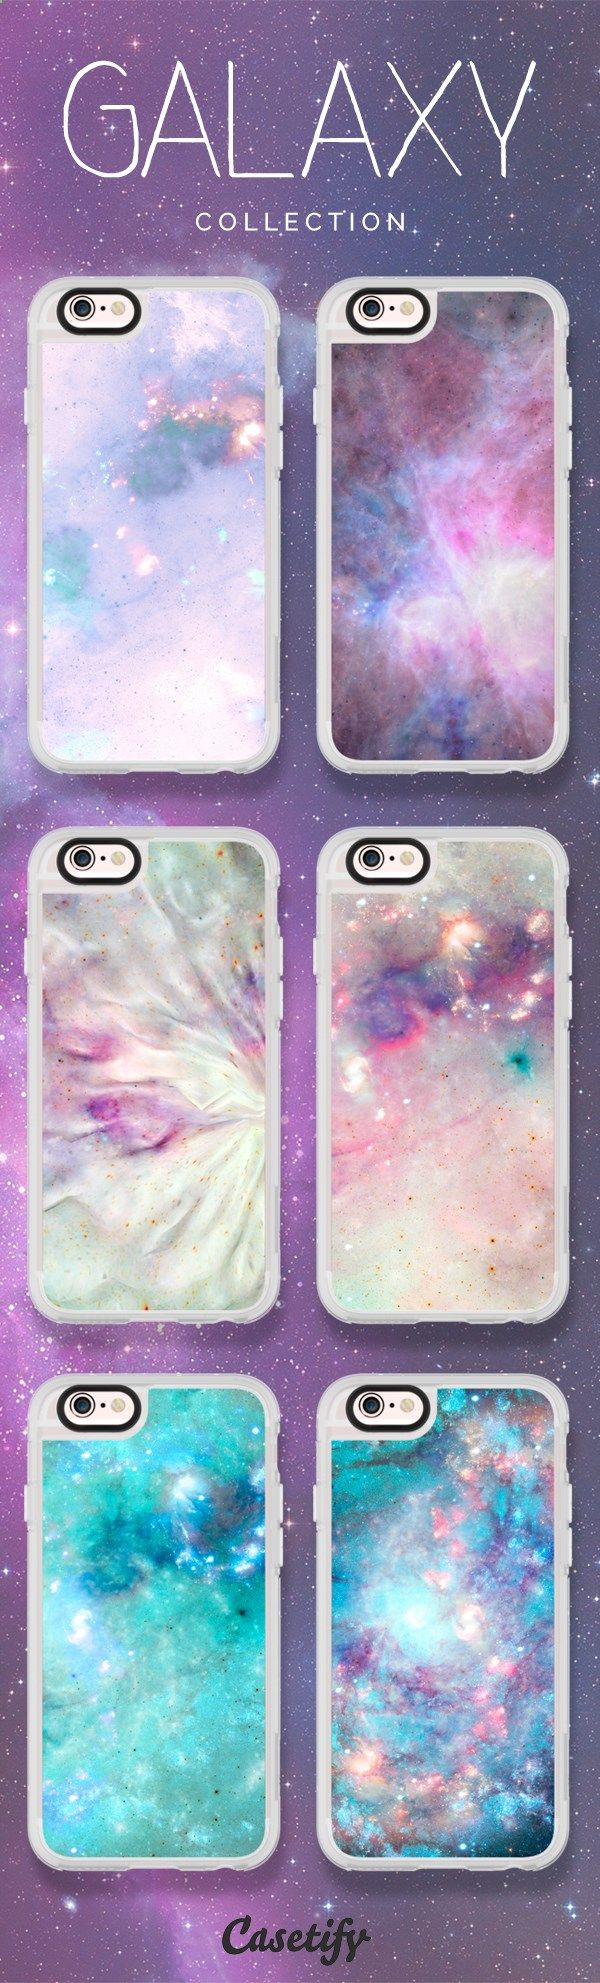 Take a look at these cases featuring galaxies designed by Barruf Art now! Explore it with the space illustrartion ! >>> www.casetify.com/... | Casetify